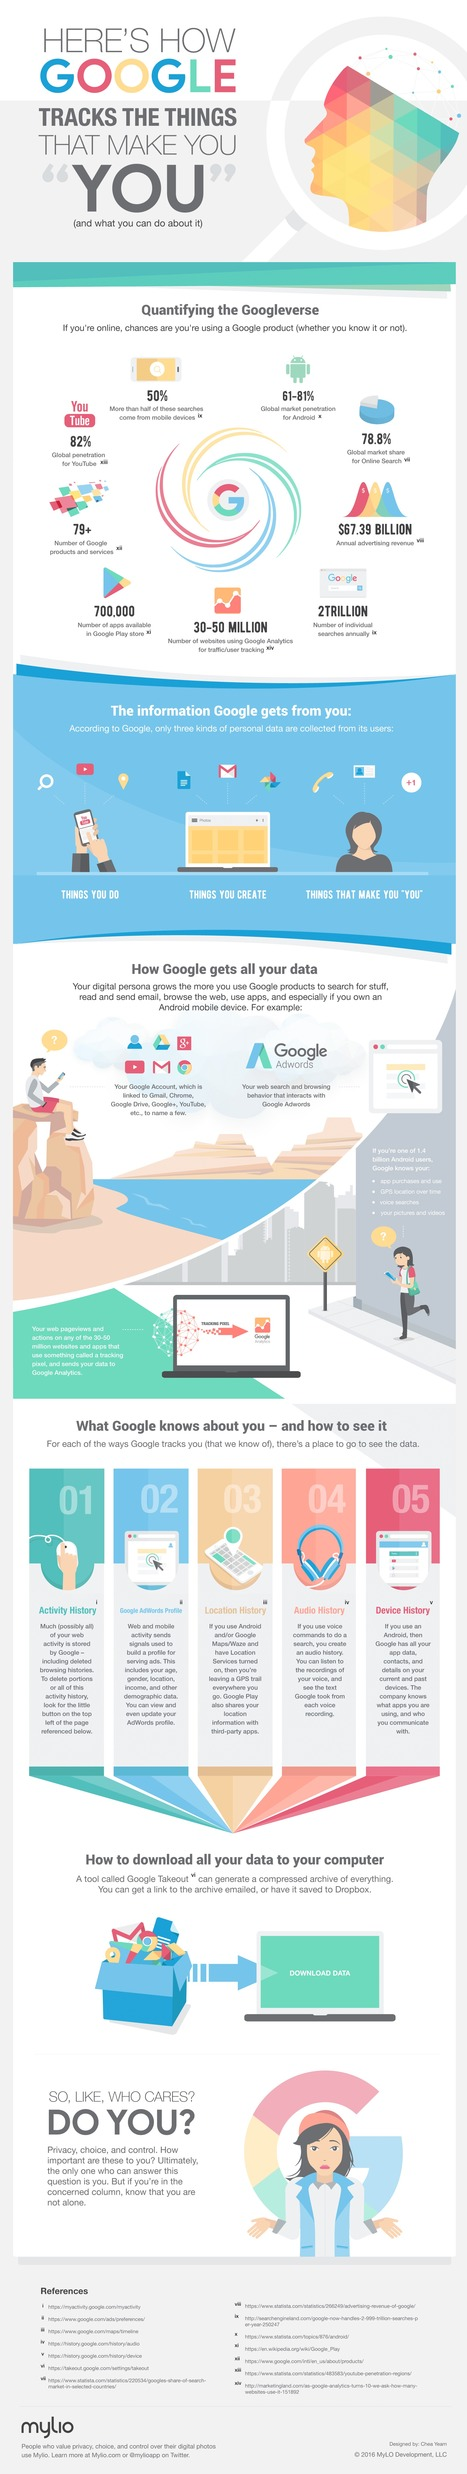 INFOGRAPHIC: Here's How Google Tracks You - and What You Can Do About It | Wiki_Universe | Scoop.it